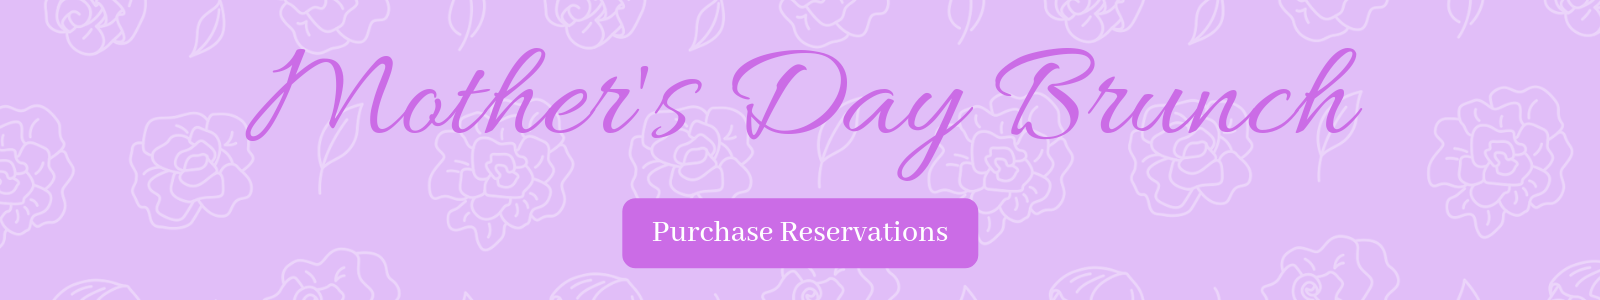 Mother's Day Brunch 2019 Events at the Wurlitzer